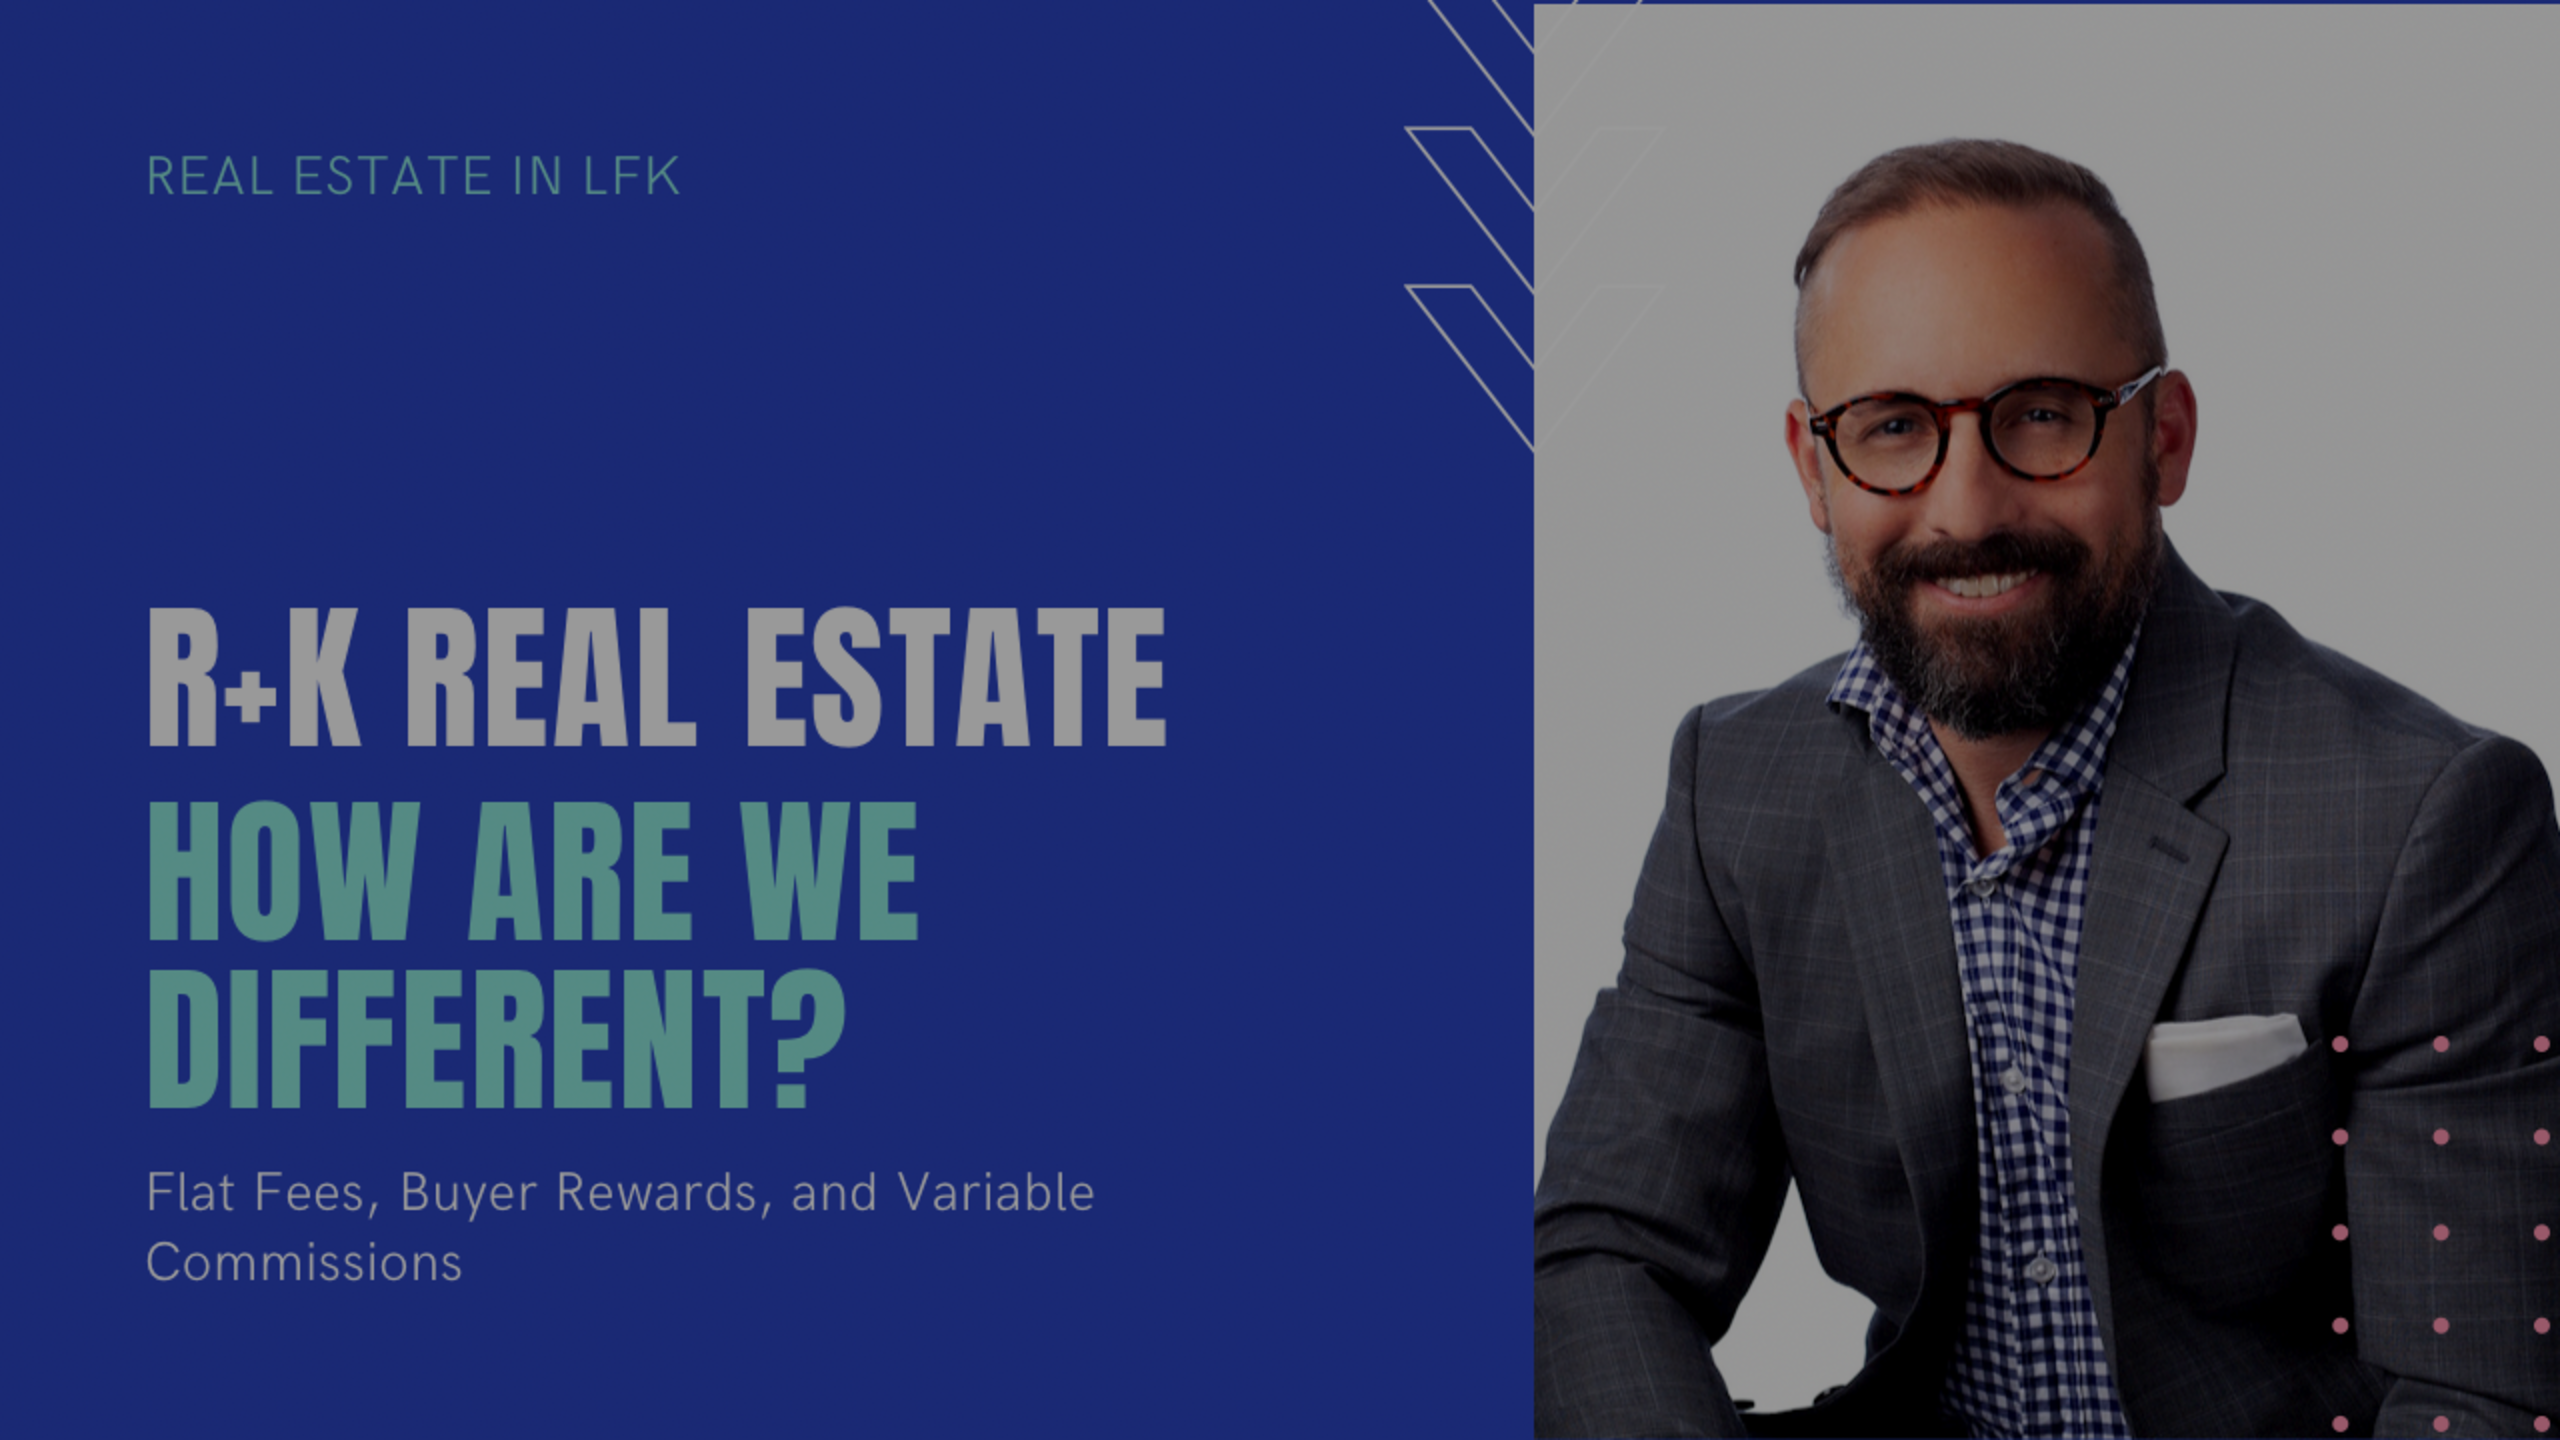 What Makes R+K Real Estate Different?